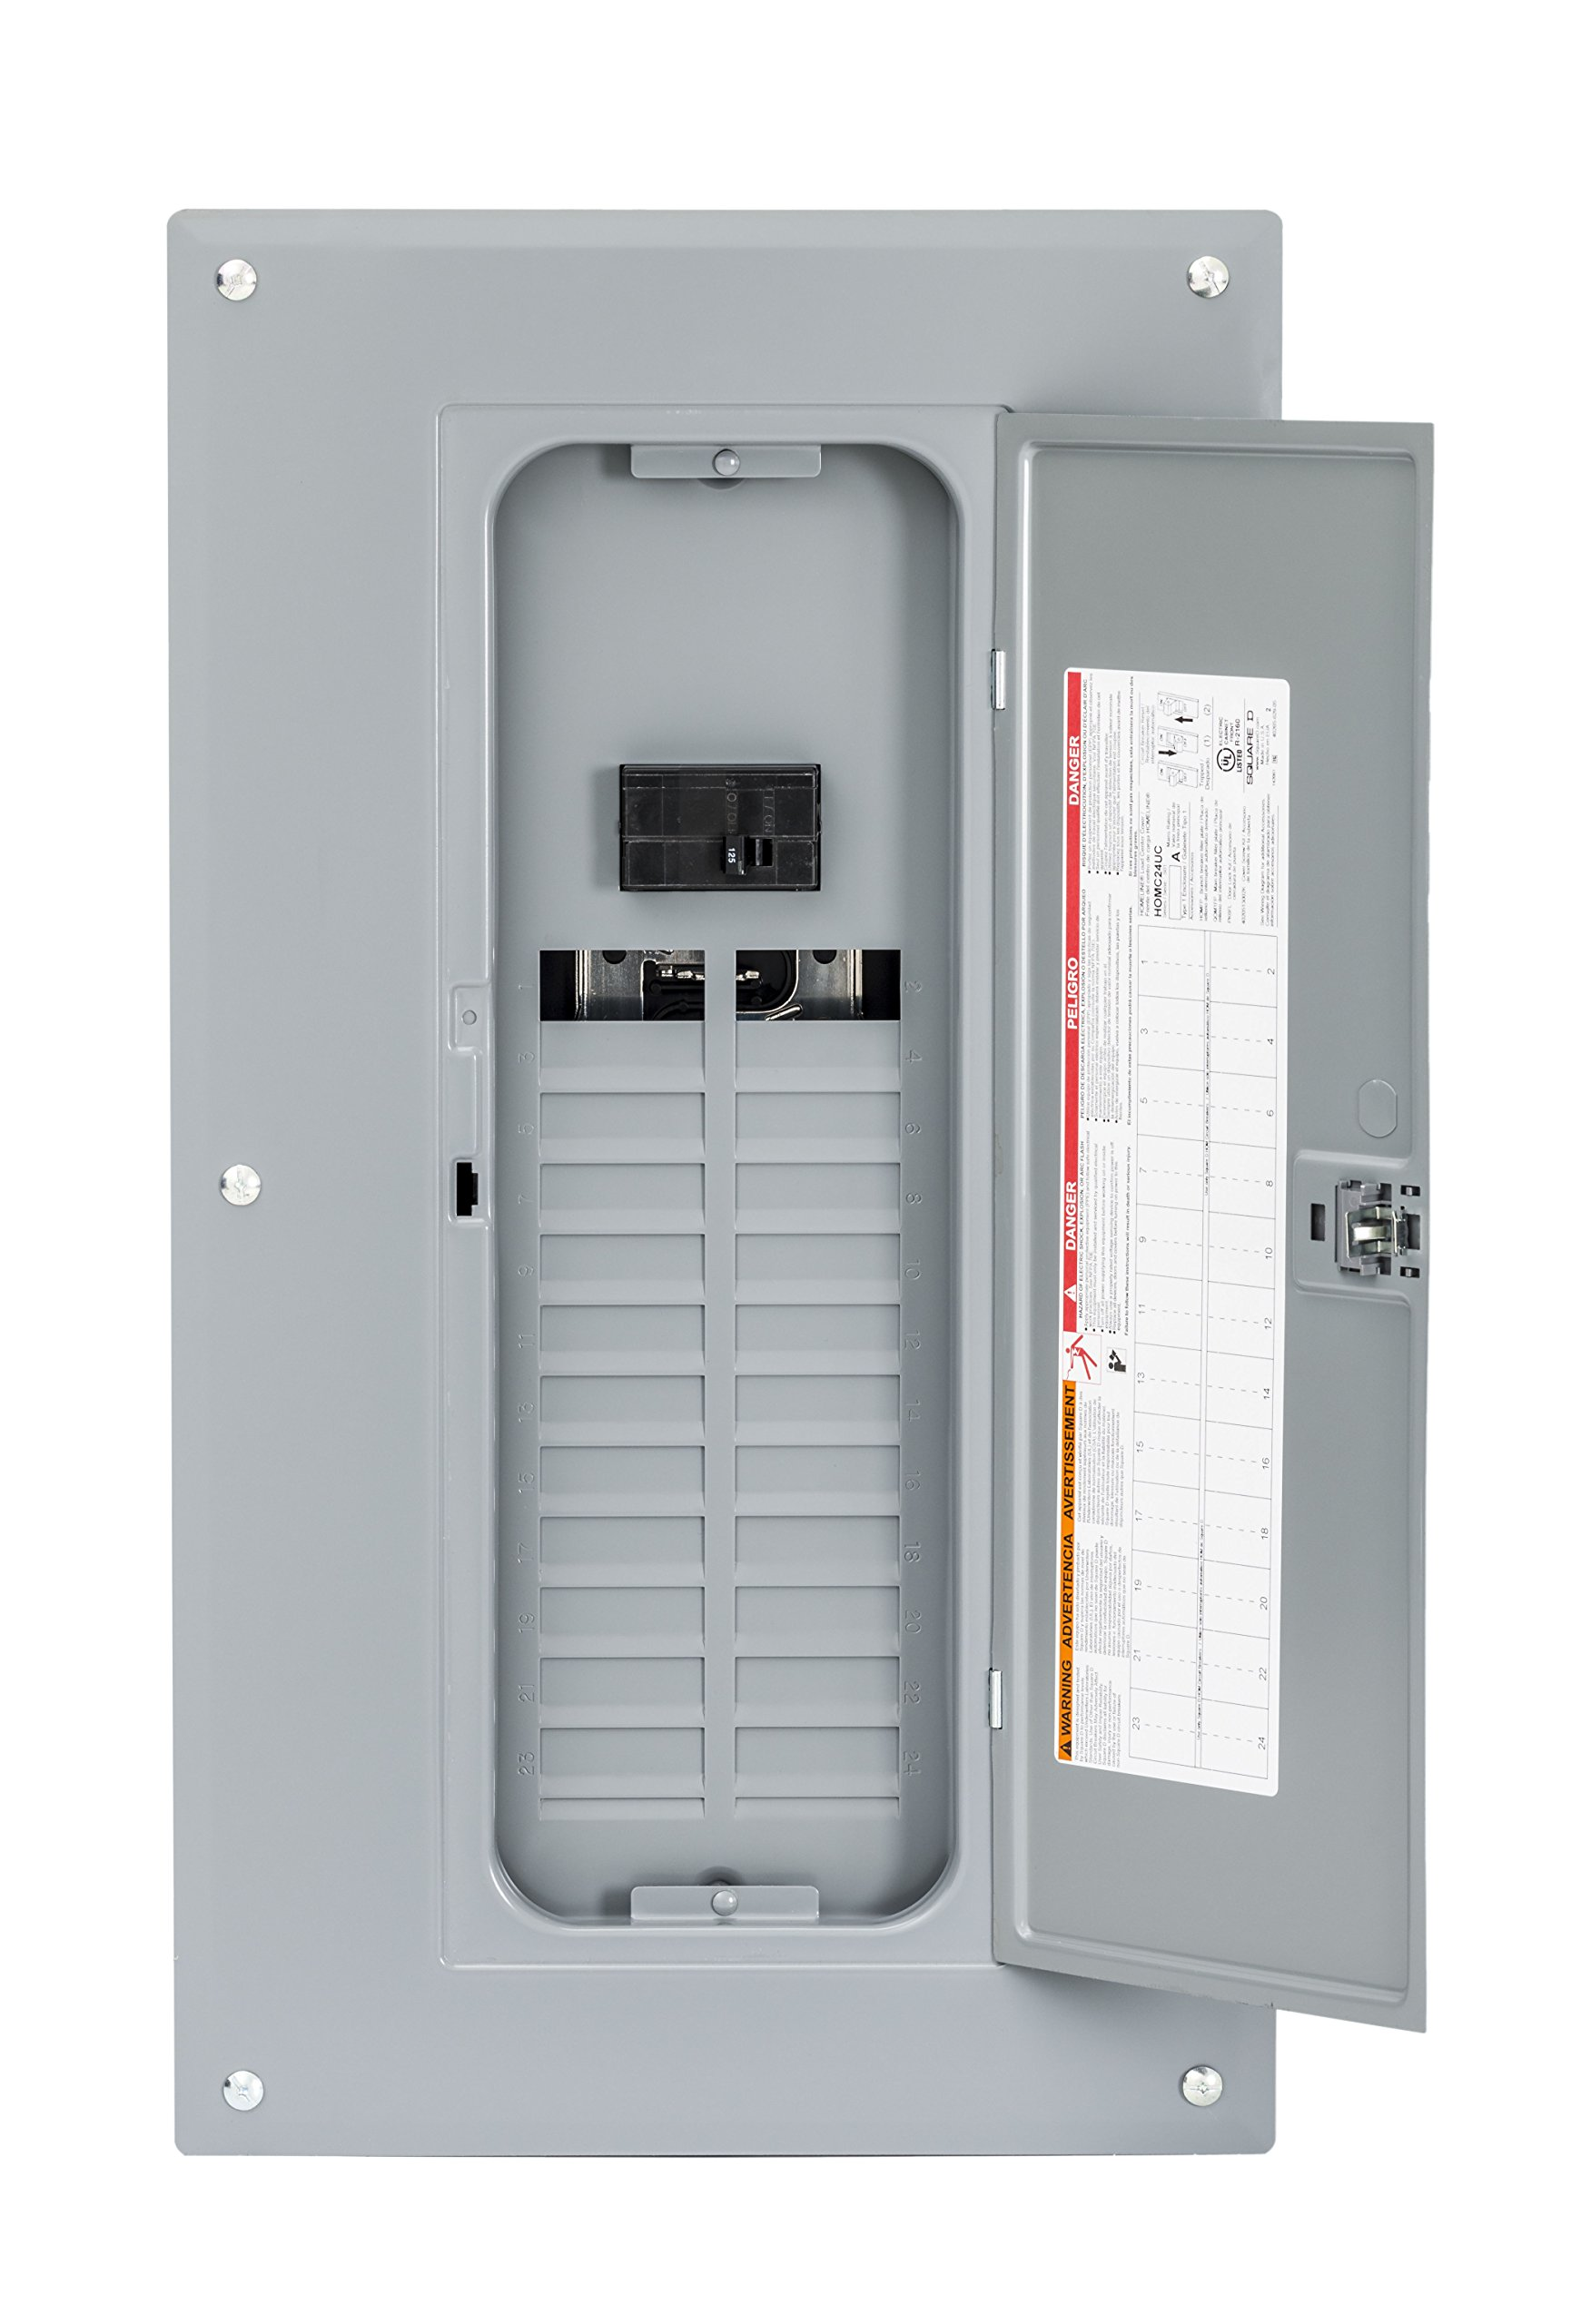 Square D by Schneider Electric HOM2448M125PC Homeline 125 Amp 24-Space 48-Circuit Indoor Main Breaker Load Center with Cover (Plug-on Neutral Ready),